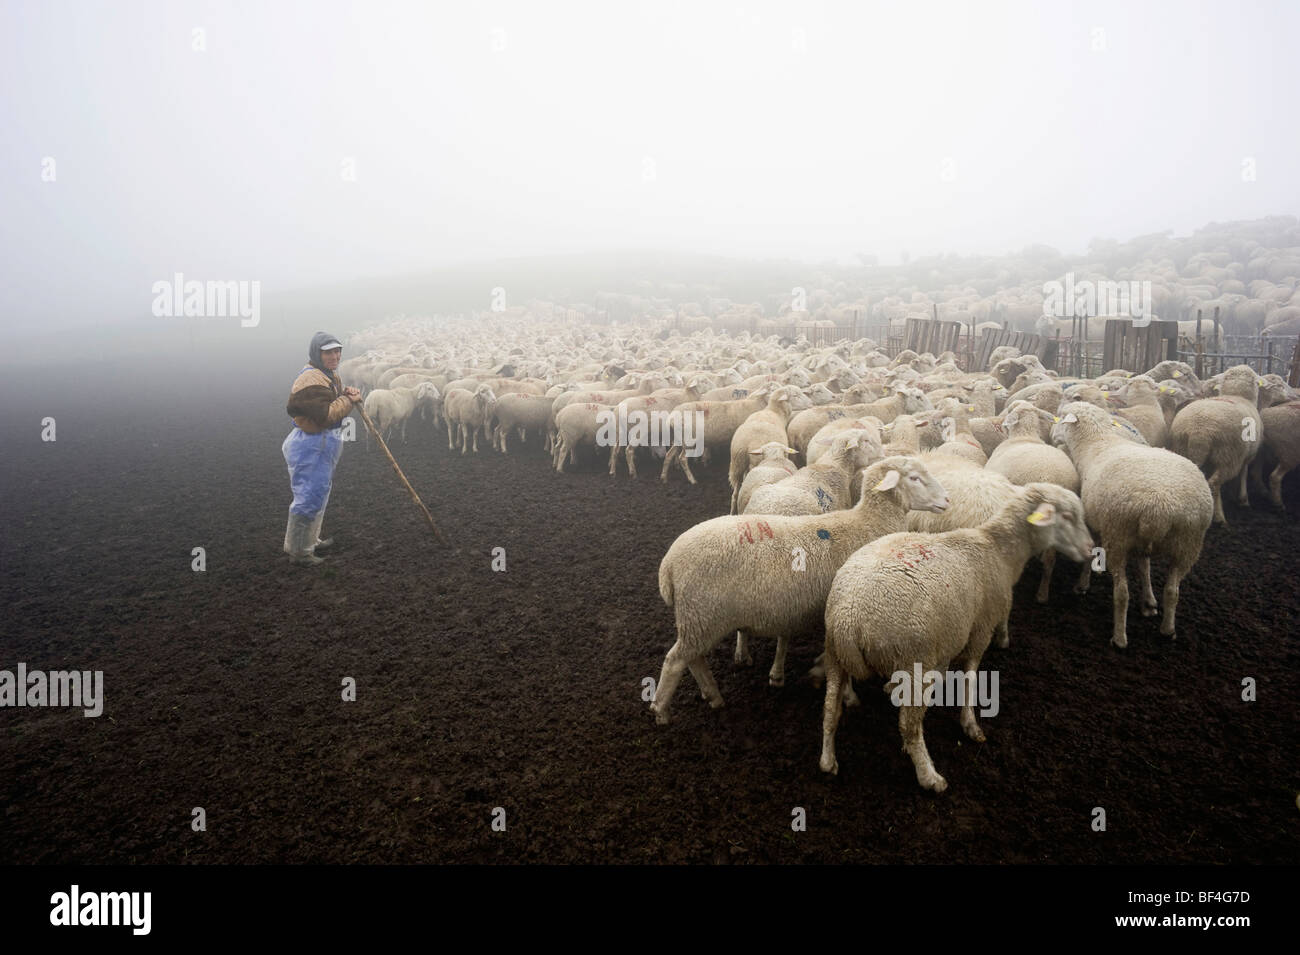 Flock of sheep in the early morning in the Monte Sibillini mountains, Apennines, Le Marche, Italy, Europe - Stock Image